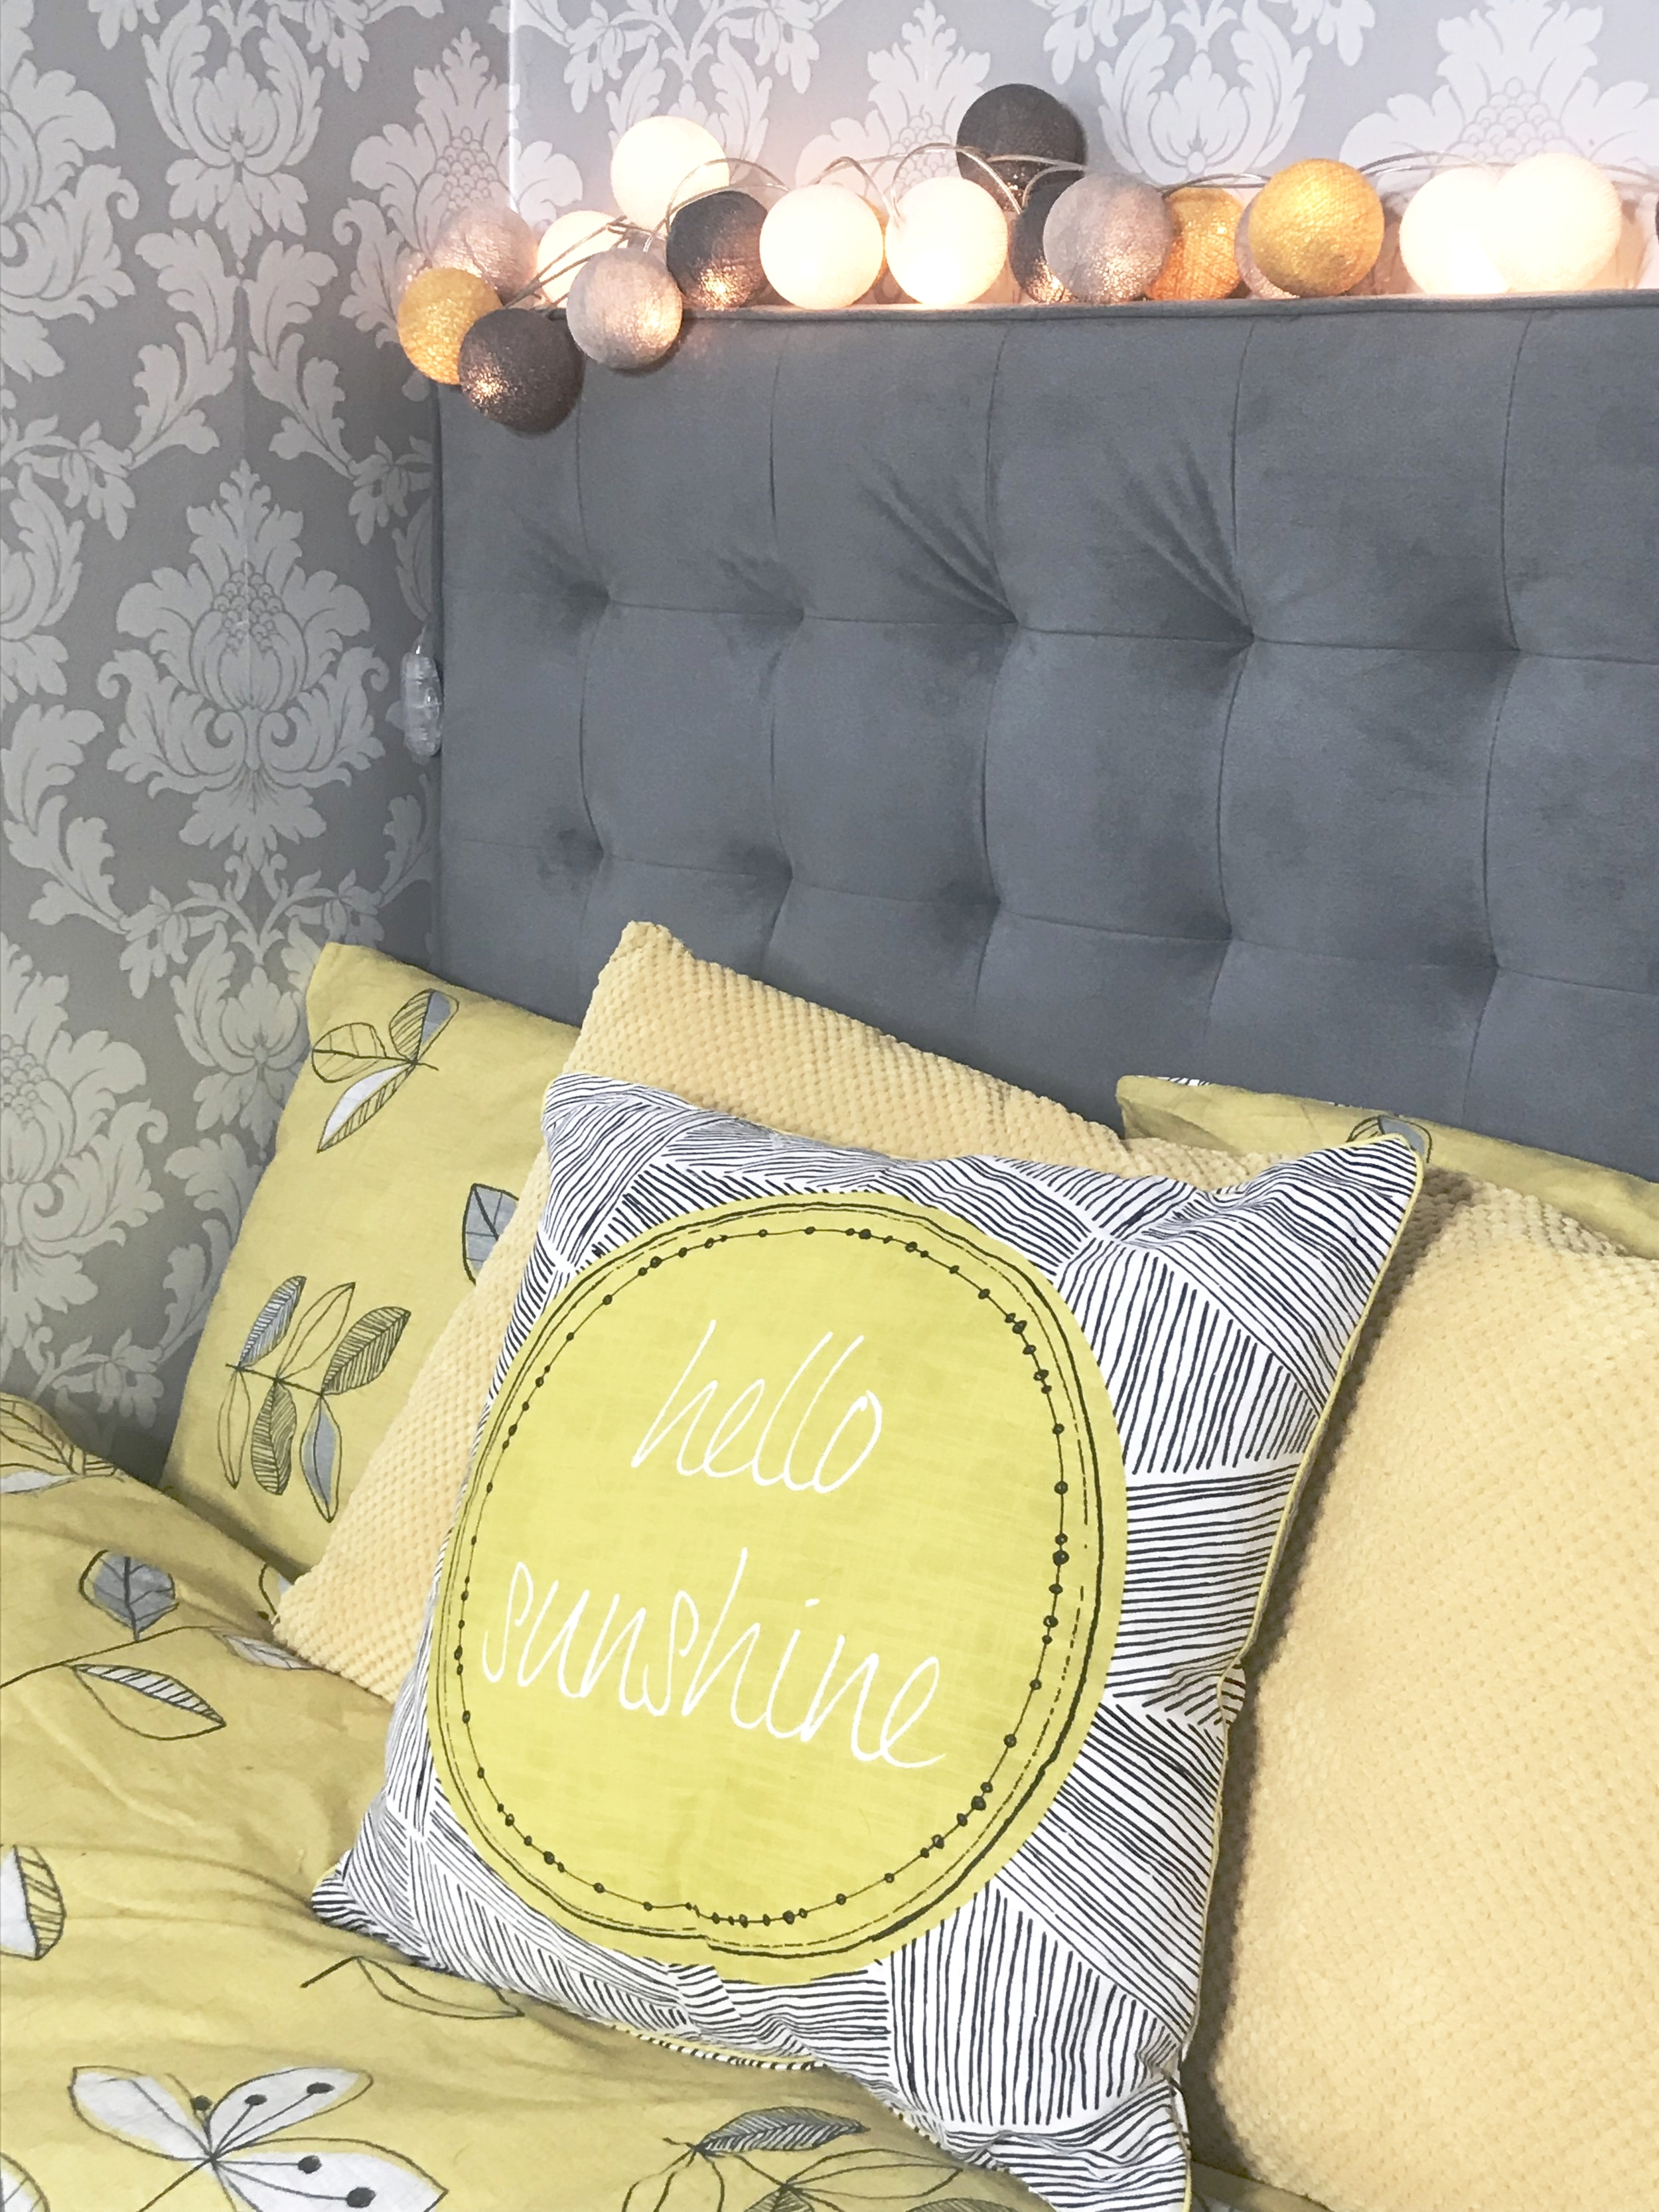 Bringing a little sunshine to my bedroom with this  Hello Sunshine pillow  from Dunelm (£9).